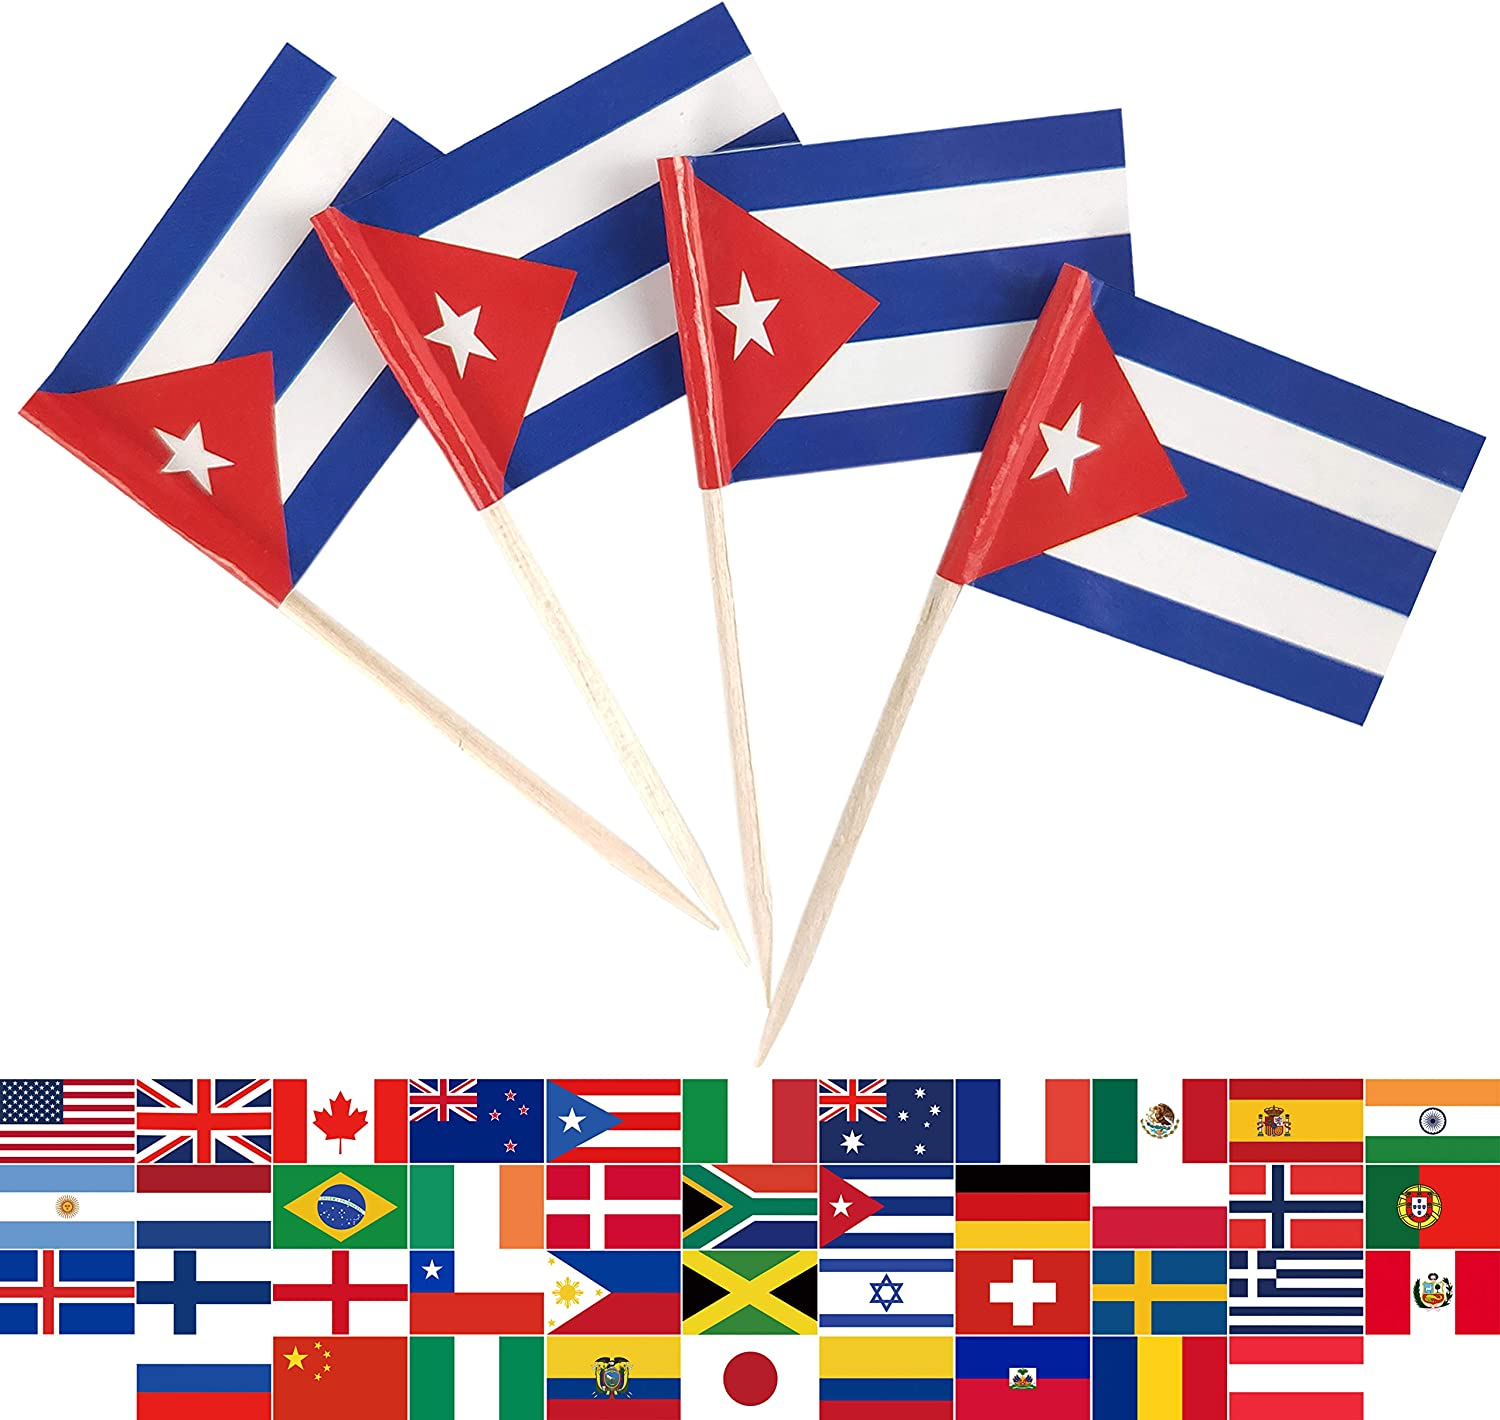 JBCD 100 Pcs Cuba Flag Toothpicks Cuban Flags Cupcake Toppers Decorations, Cocktail Toothpick Flag Cake Topper Picks Mini Small Flag Cupcake Pick Sticks